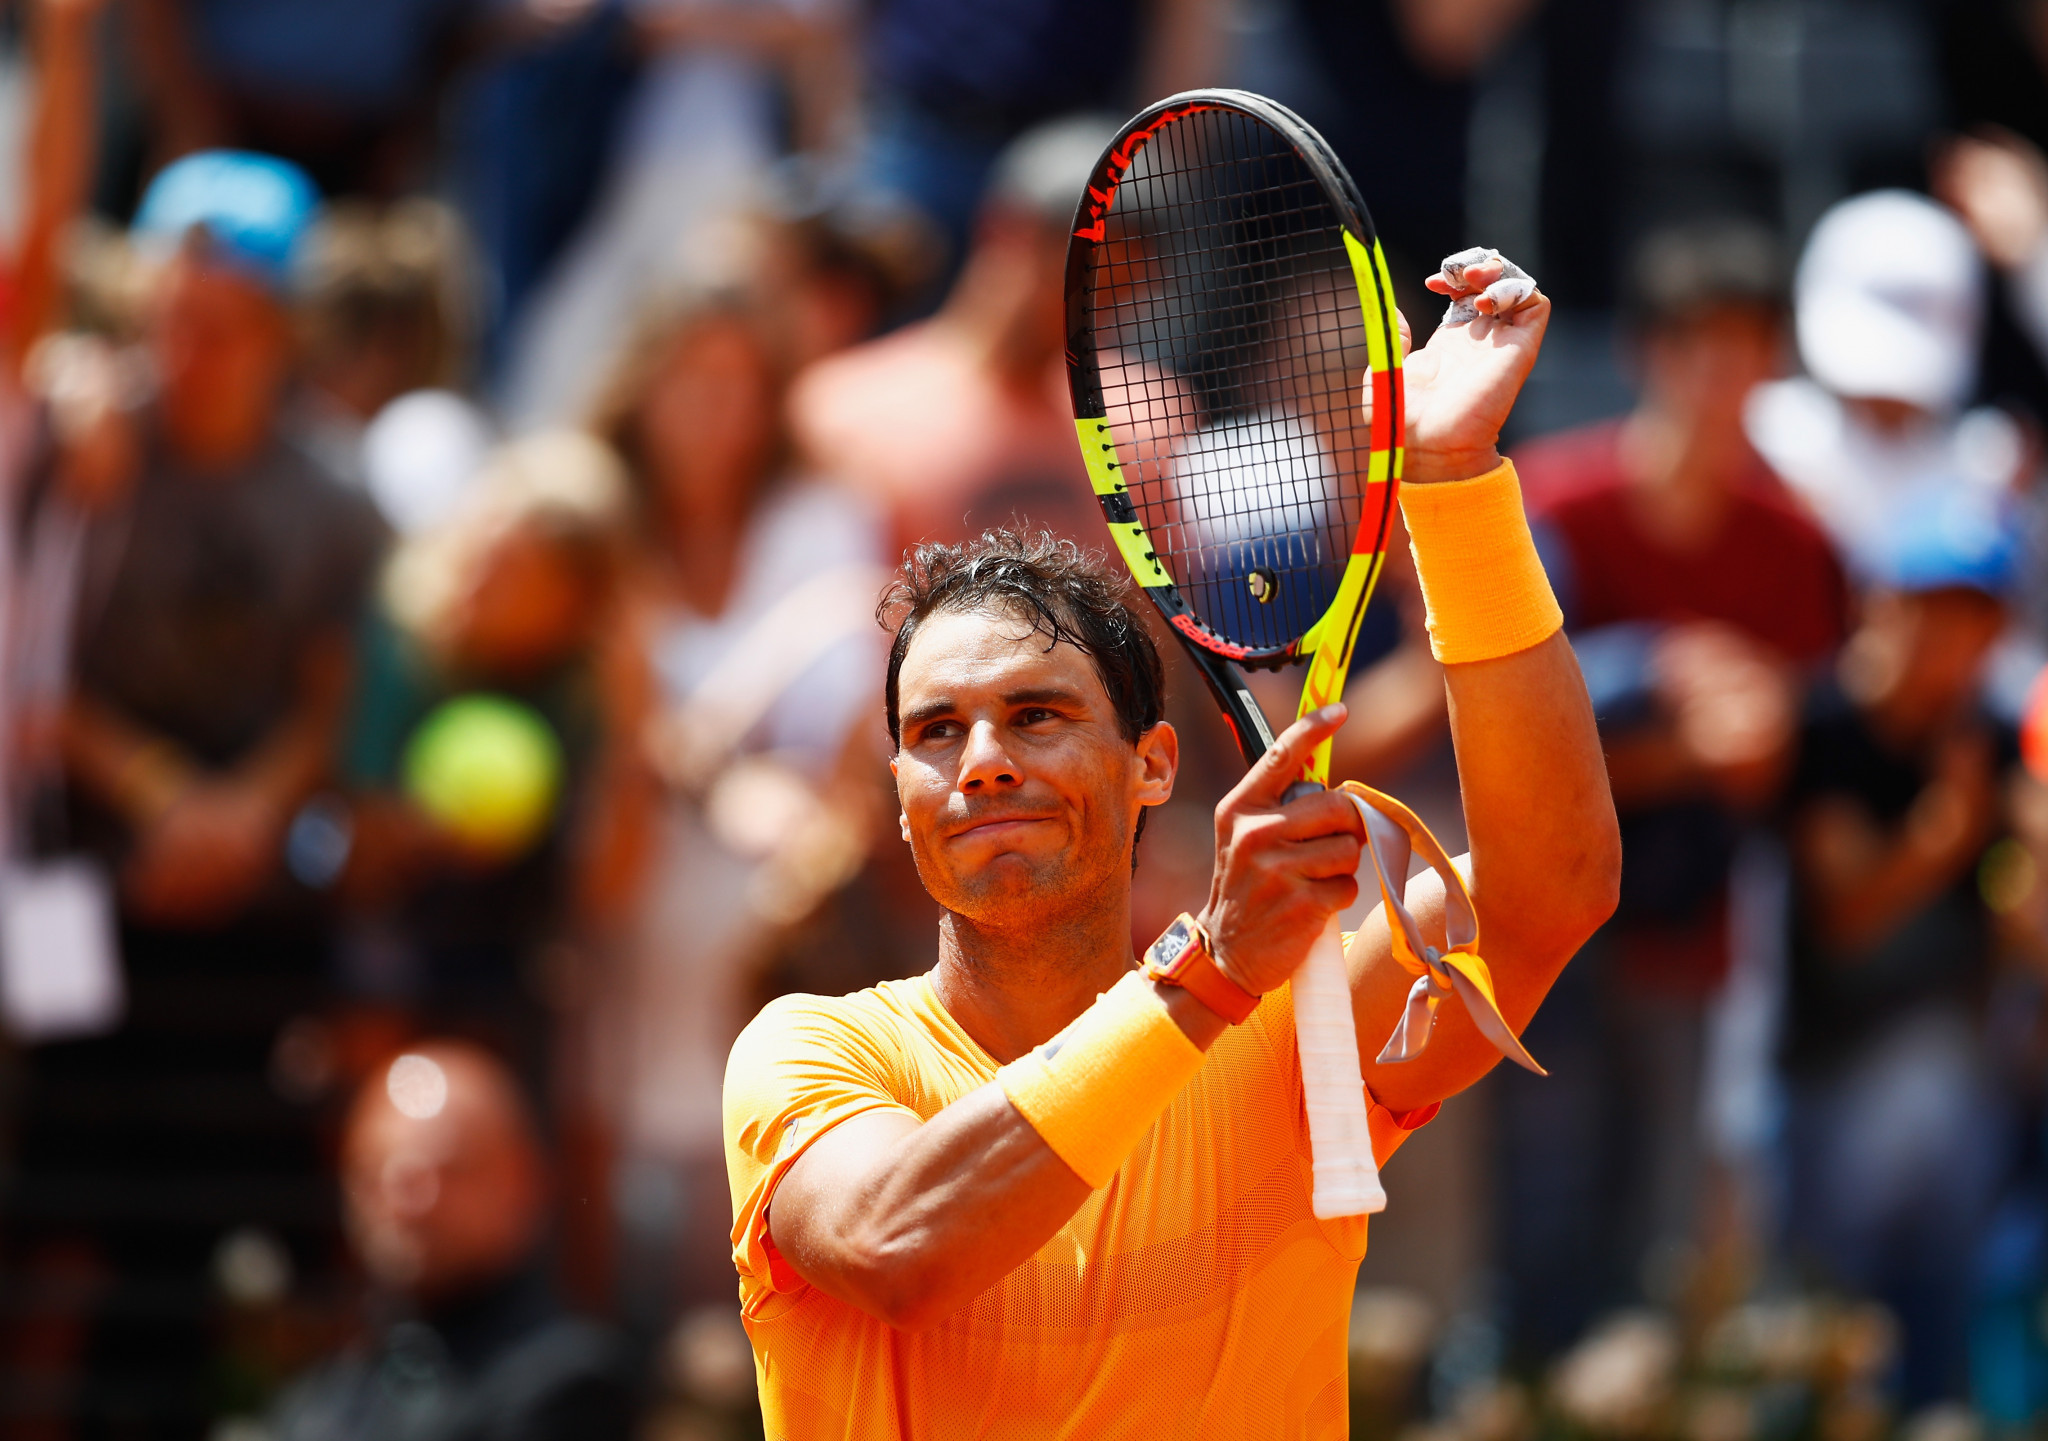 Rafael Nadal came from a set down to reach the Italian Open semi-finals ©Getty Images